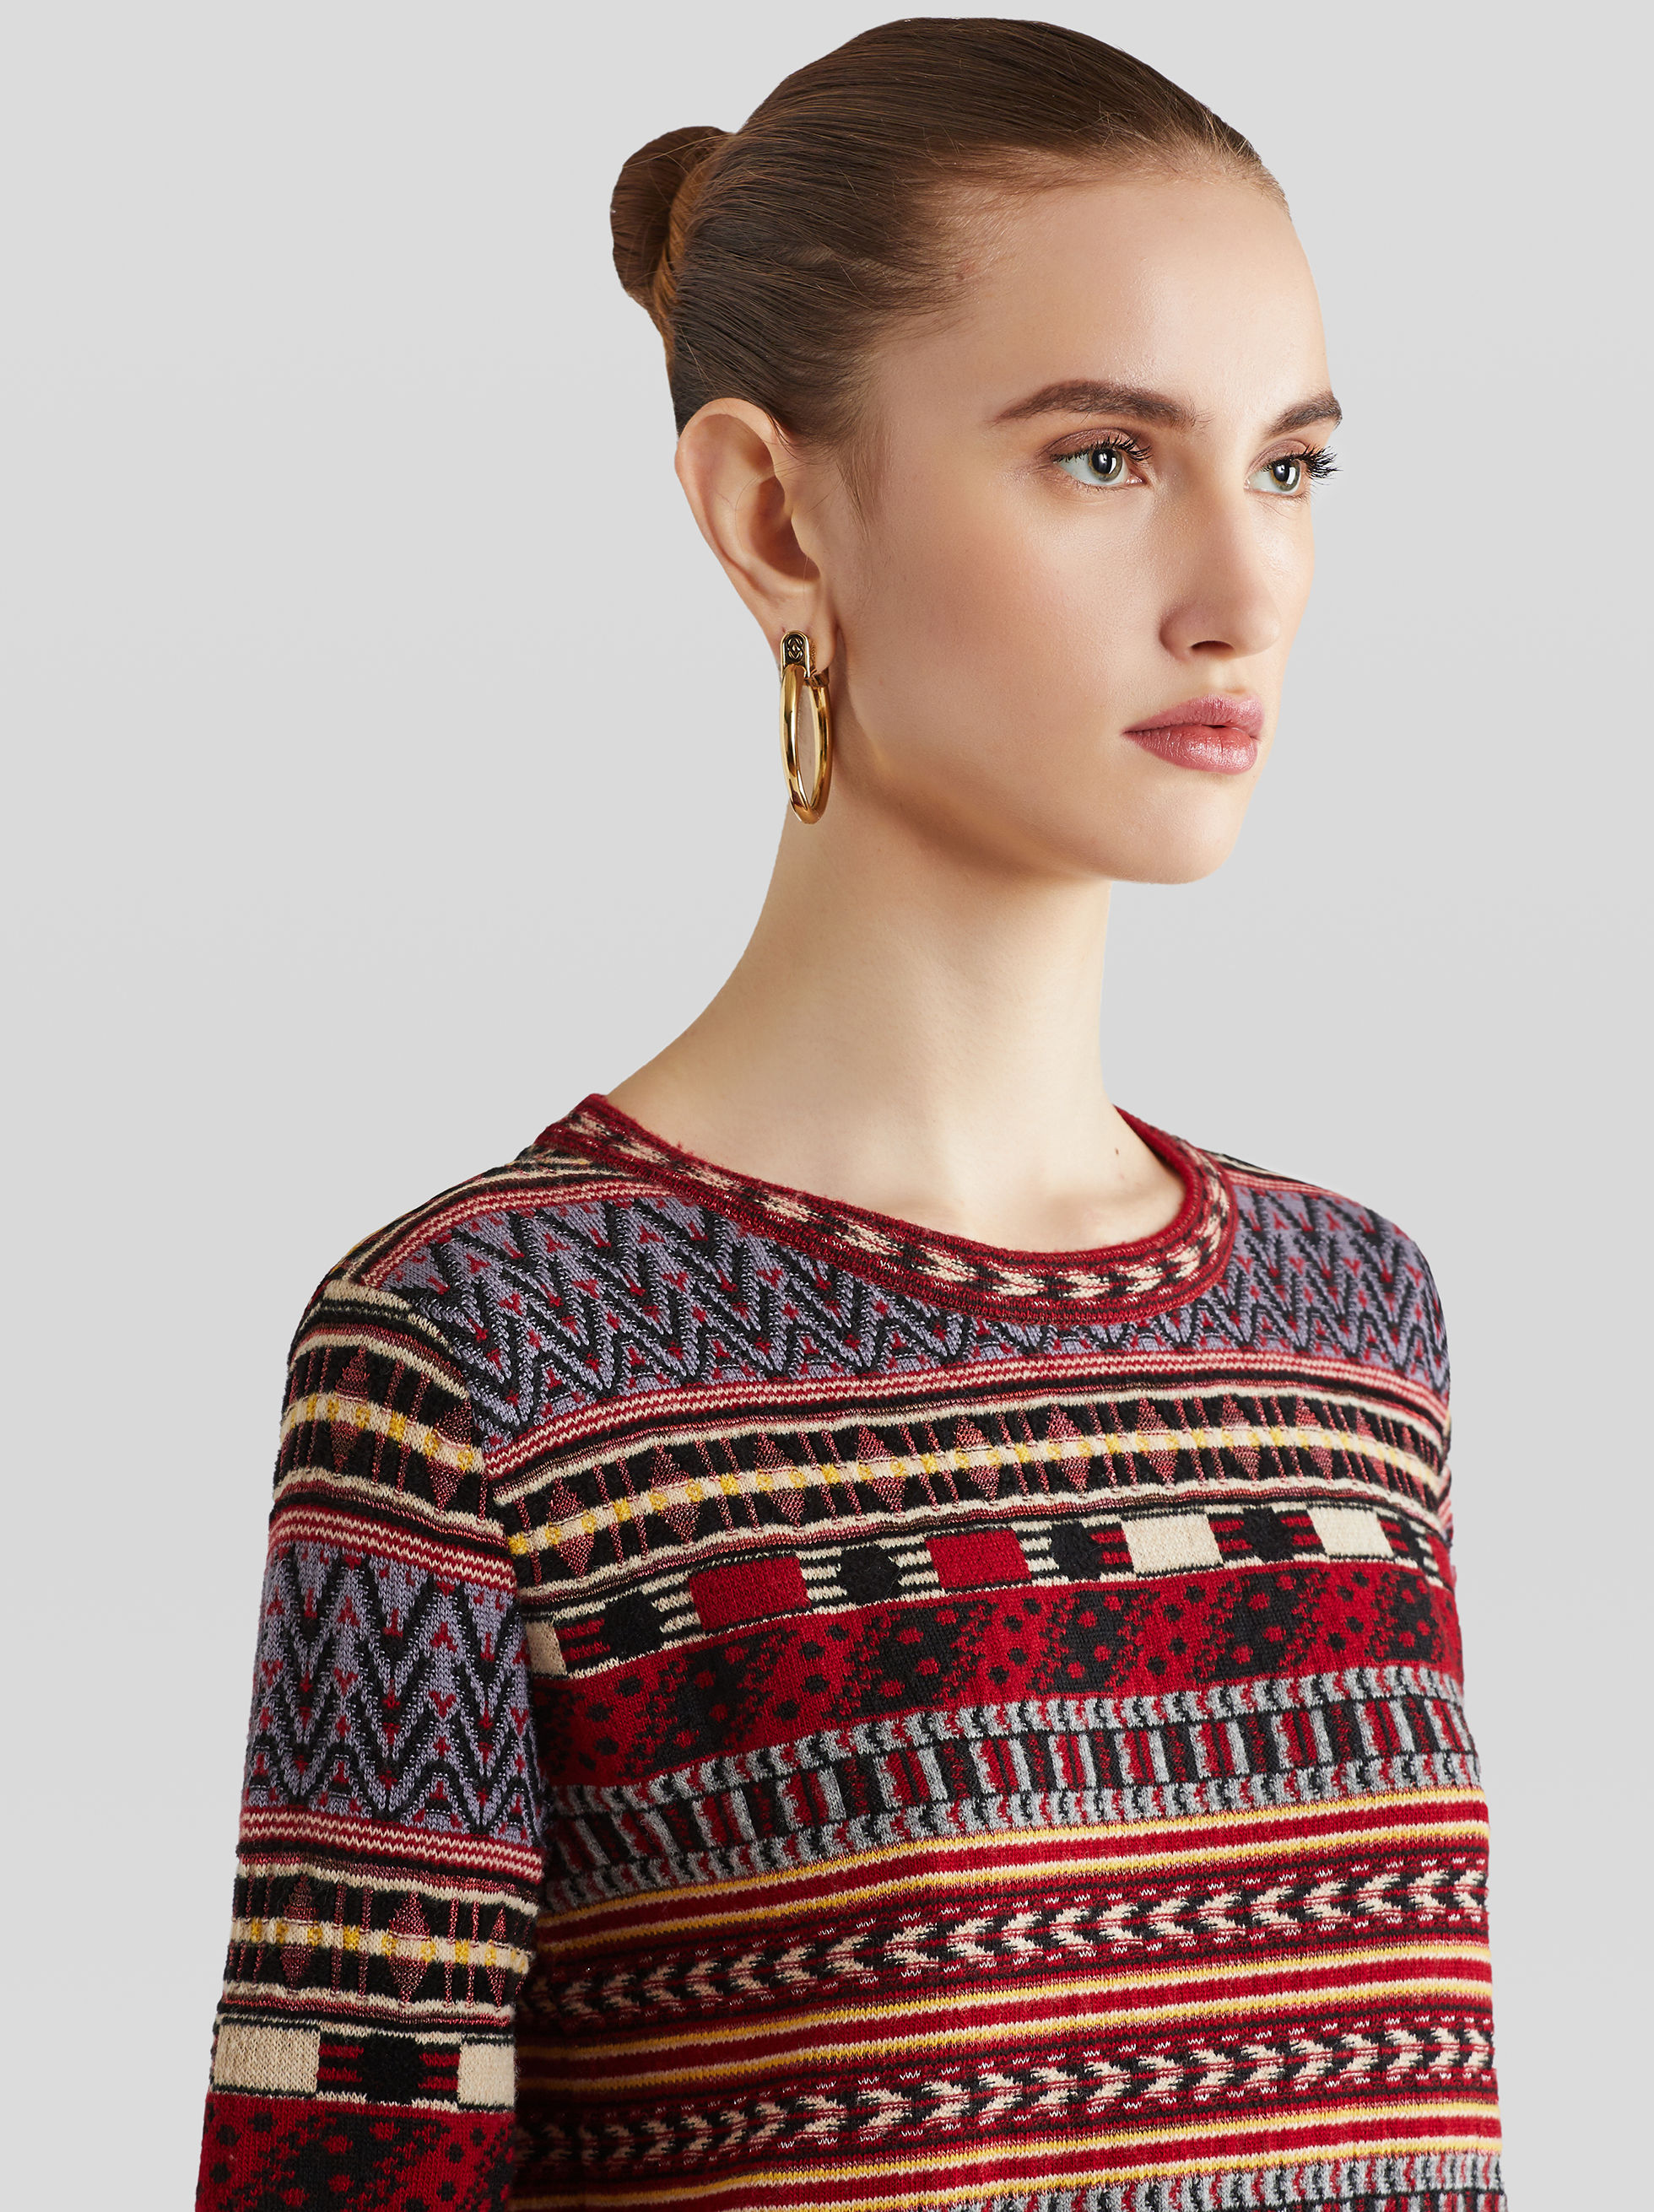 ROUND-NECKED JACQUARD JUMPER